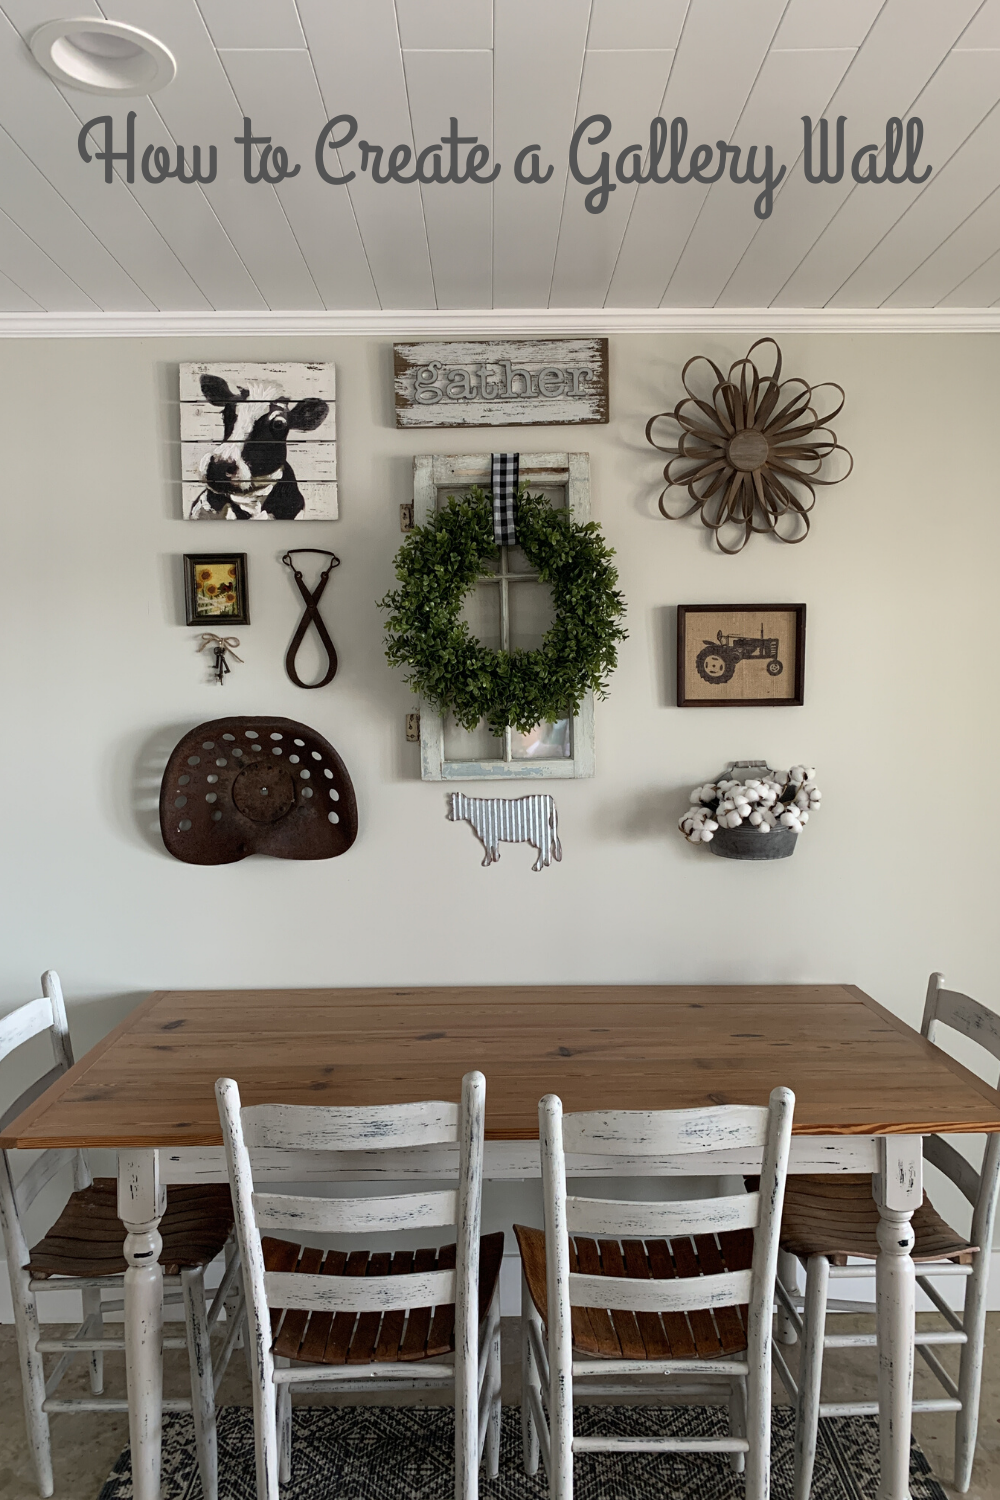 How To Create A Gallery Wall Dinning Room Wall Decor Dining Room Wall Decor Gallery Wall Living Room